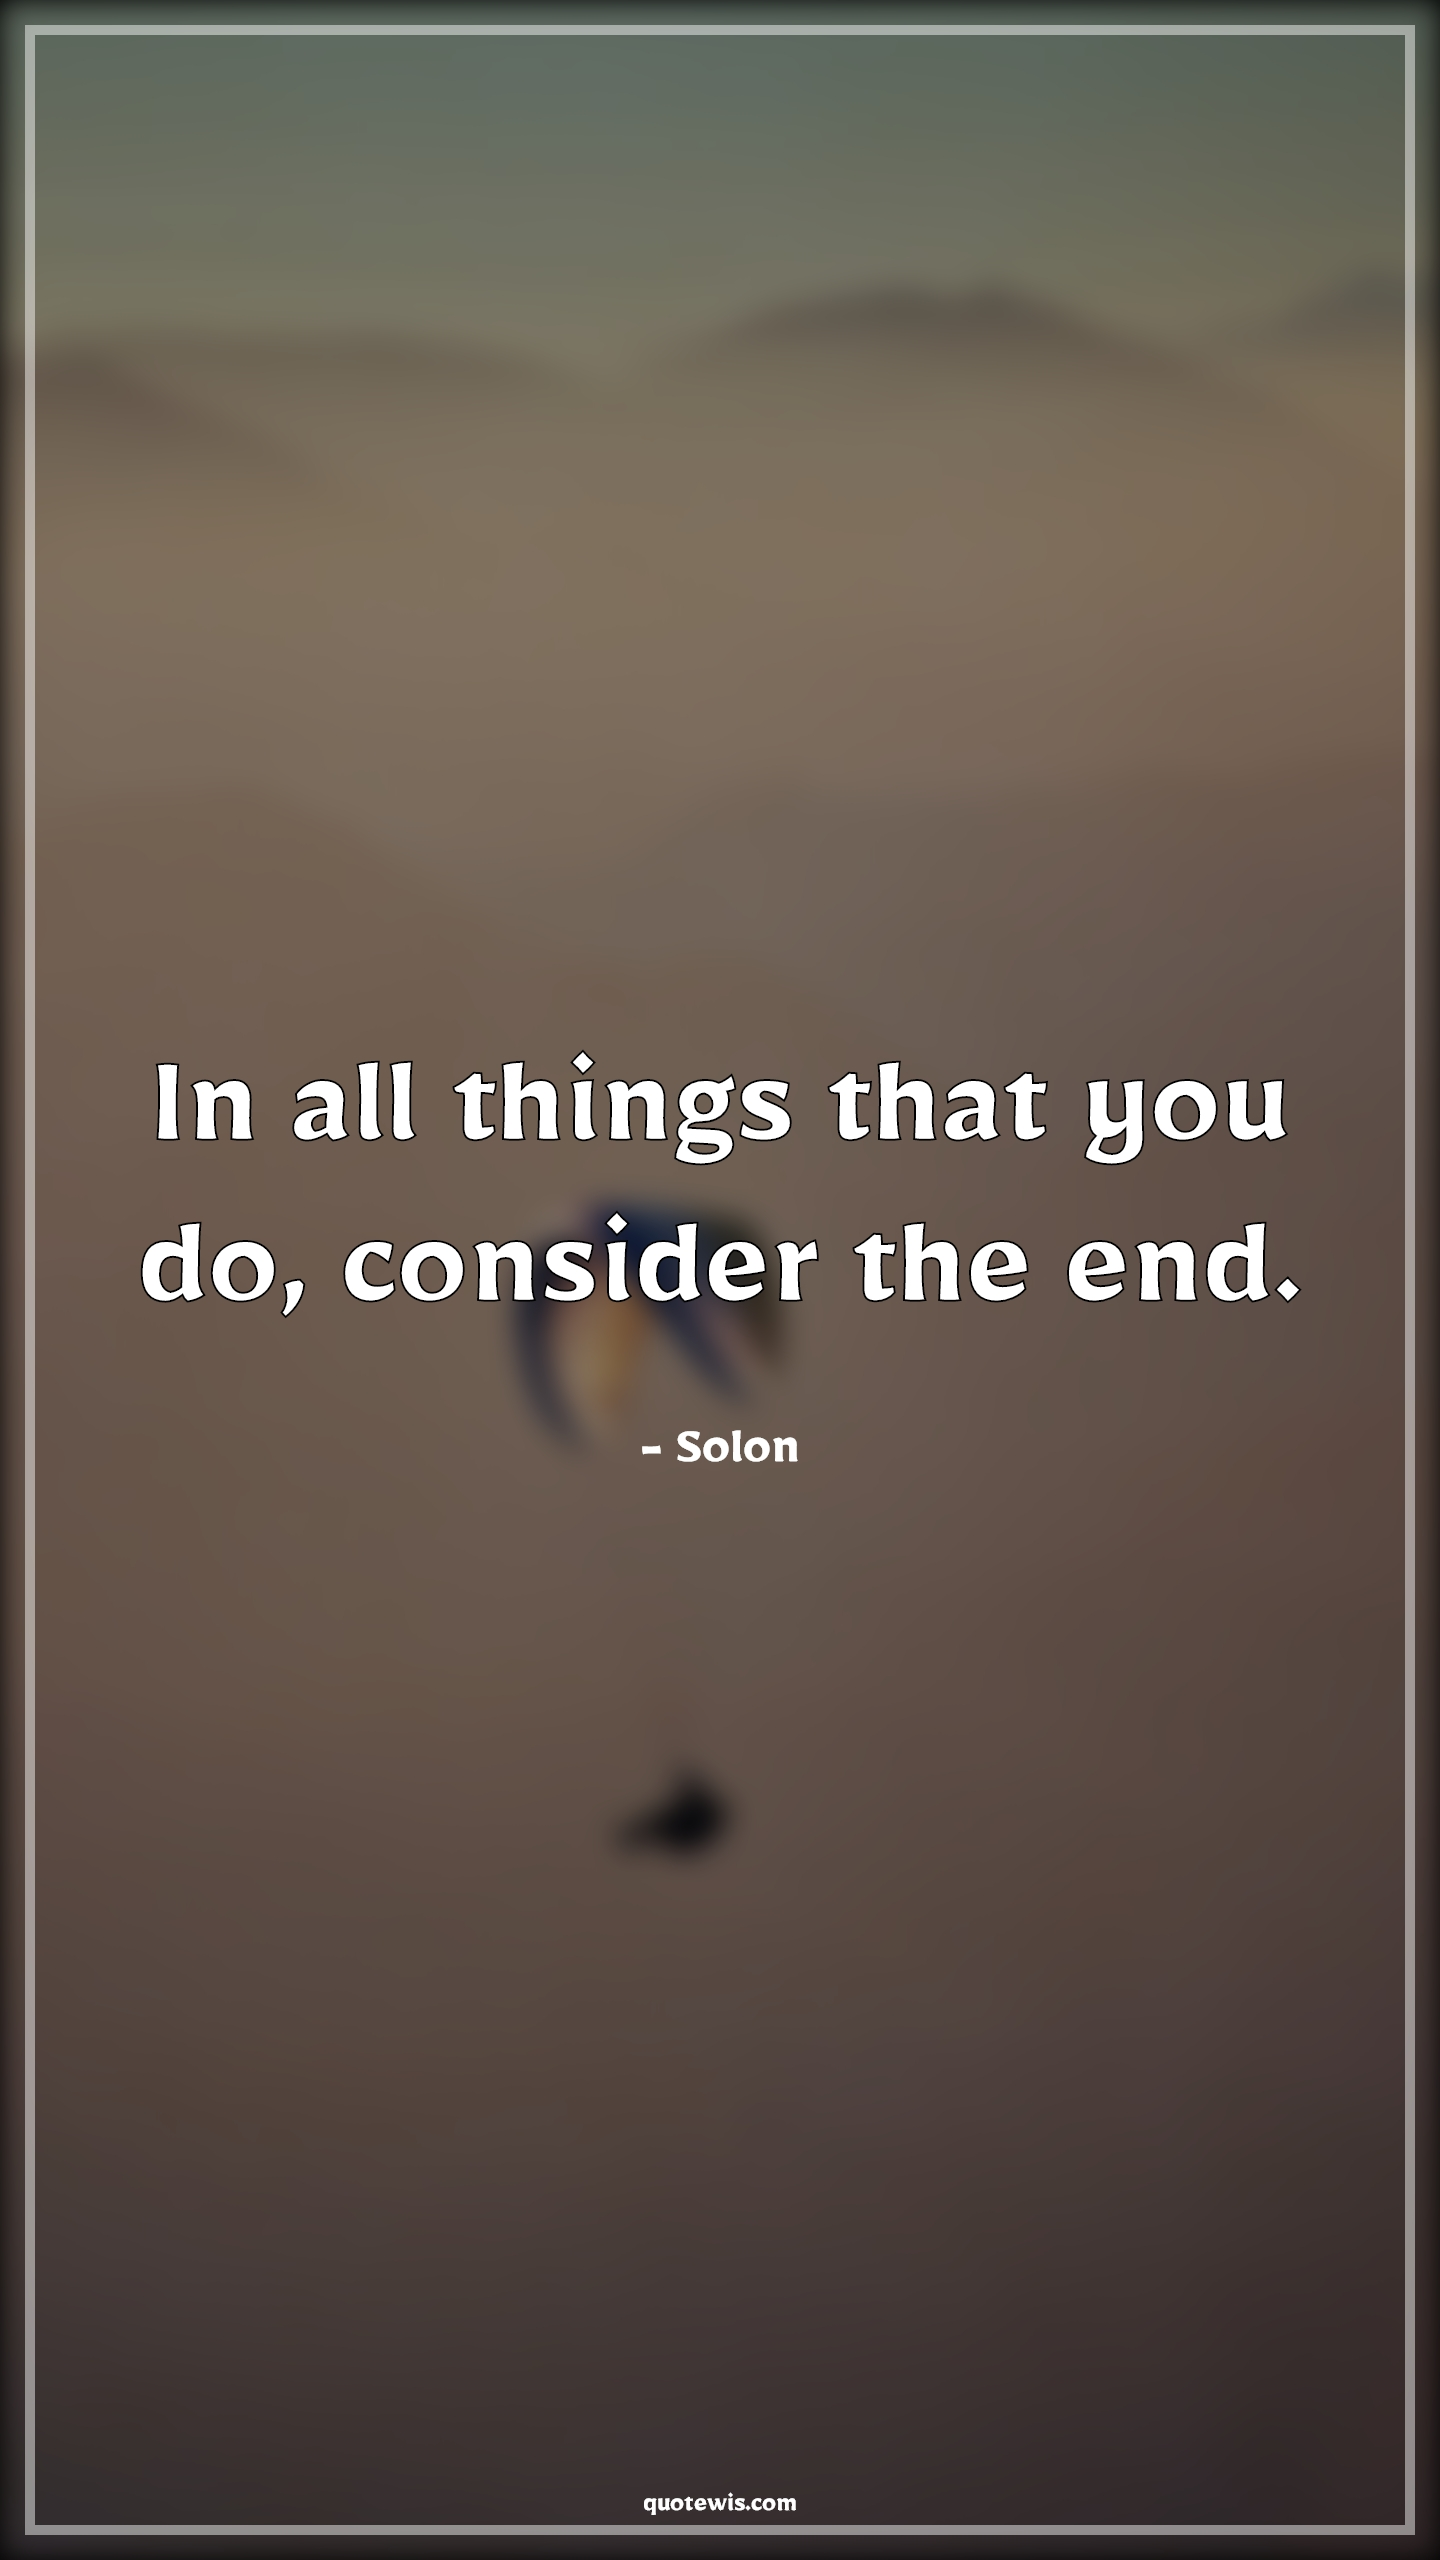 In all things that you do, consider the end.